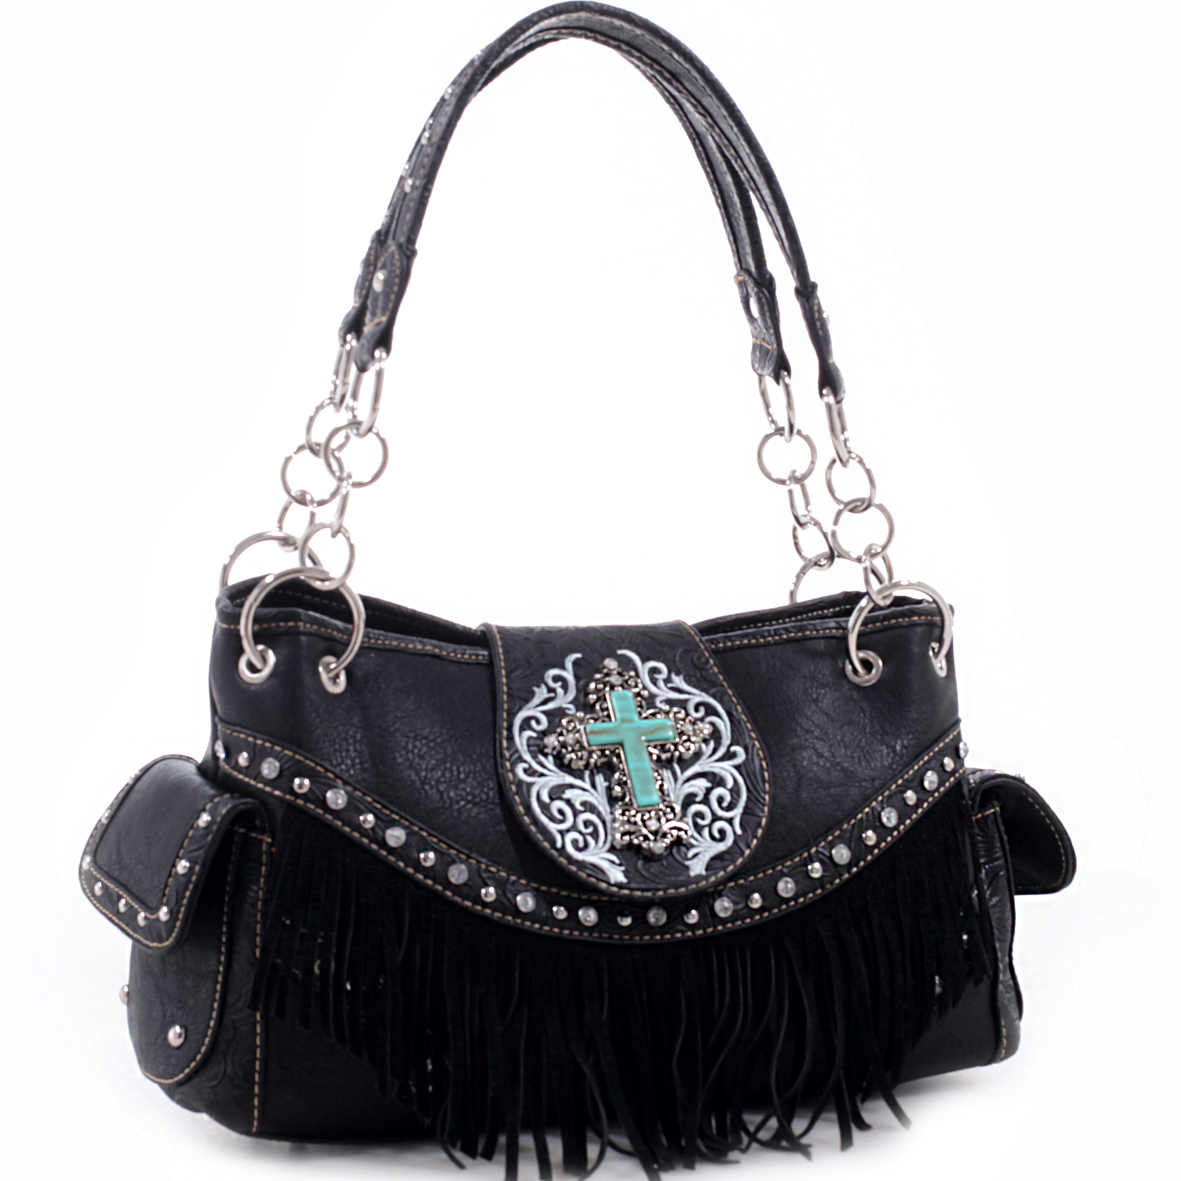 Realtree® Floral Tooled Trim with Fringe and Cross Shoulder Bag